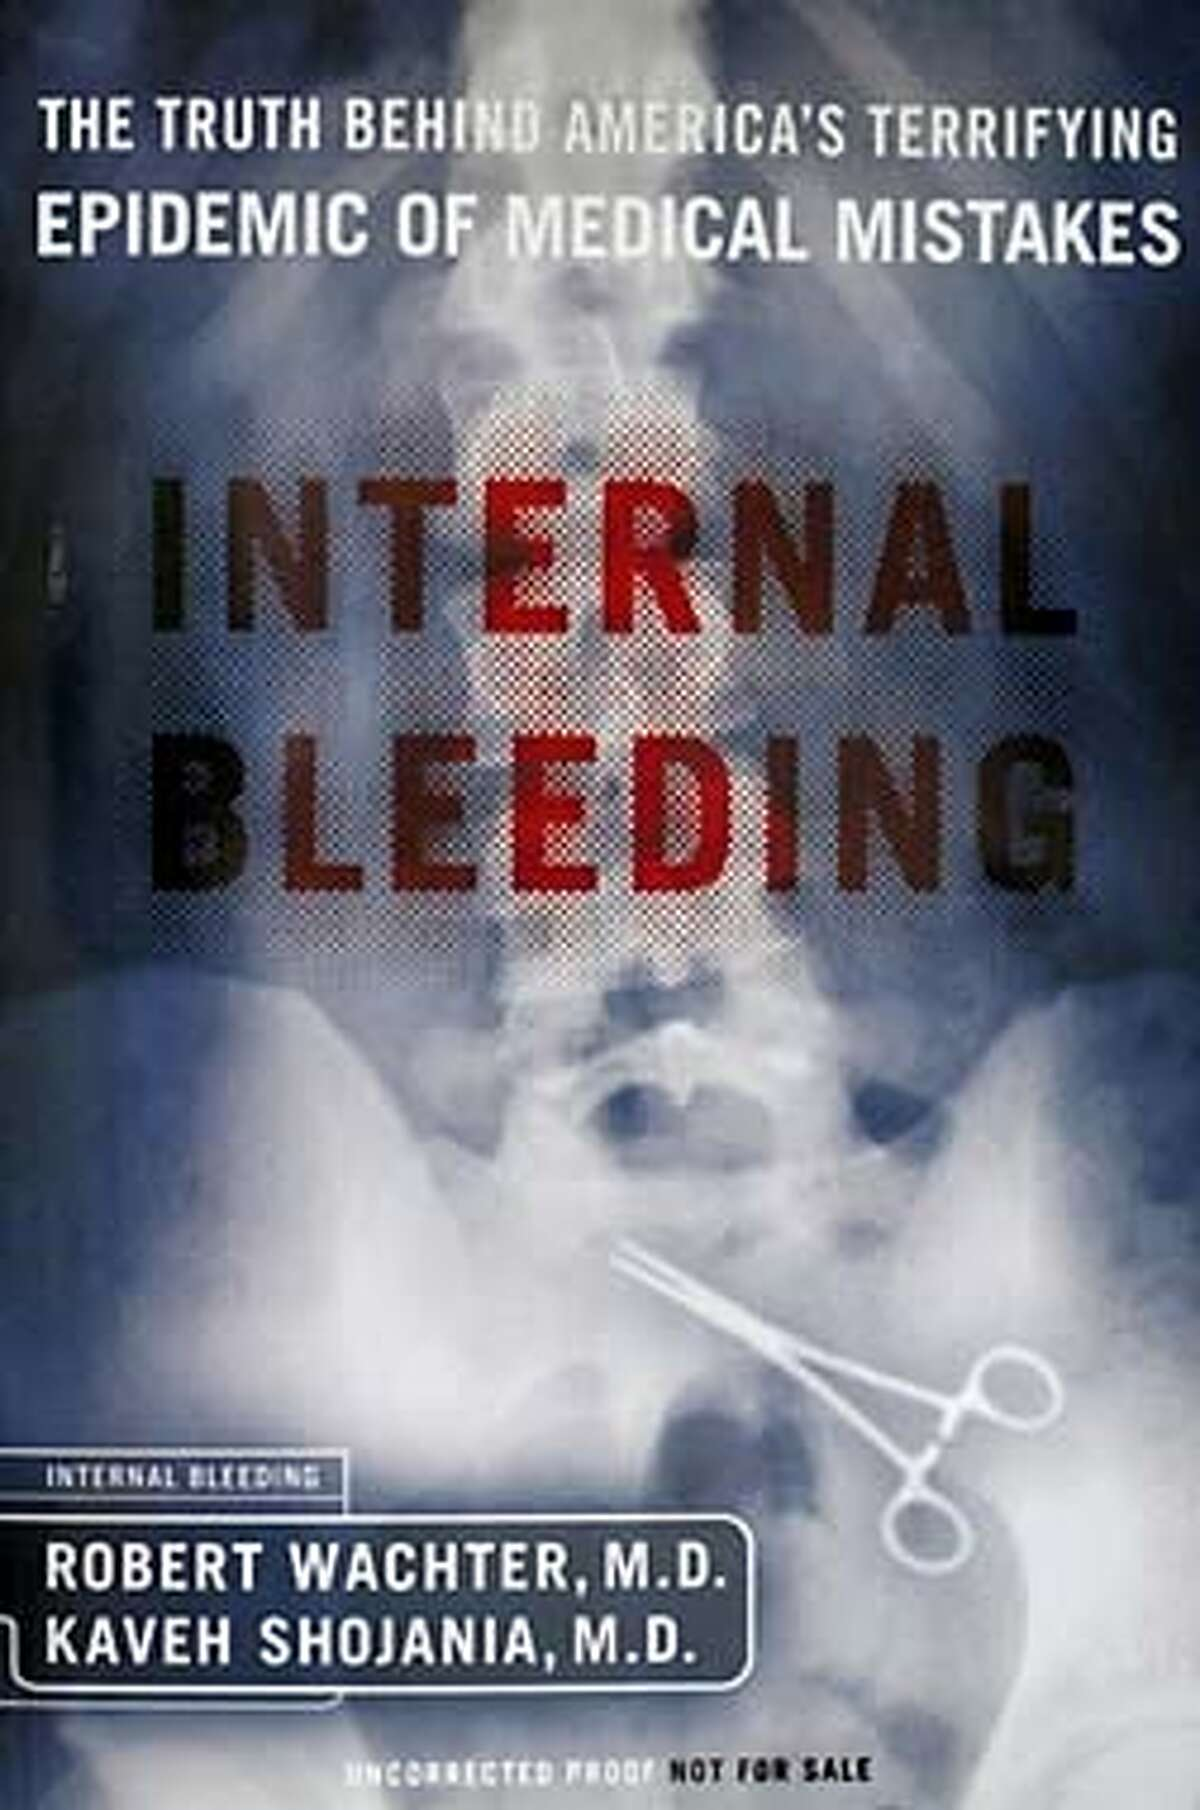 The paperback version of the popular new book on medical errors, Internal Bleeding, co-authored by Kaveh G. Shojania, M.D. (CQ) Assistant professor of Medicine at UCSF and Robert M. Wachter, M.D. (CQ) Chief of the Medical Service at UCSF on 2/19/04 in San Francisco. Kat Wade / The Chronicle